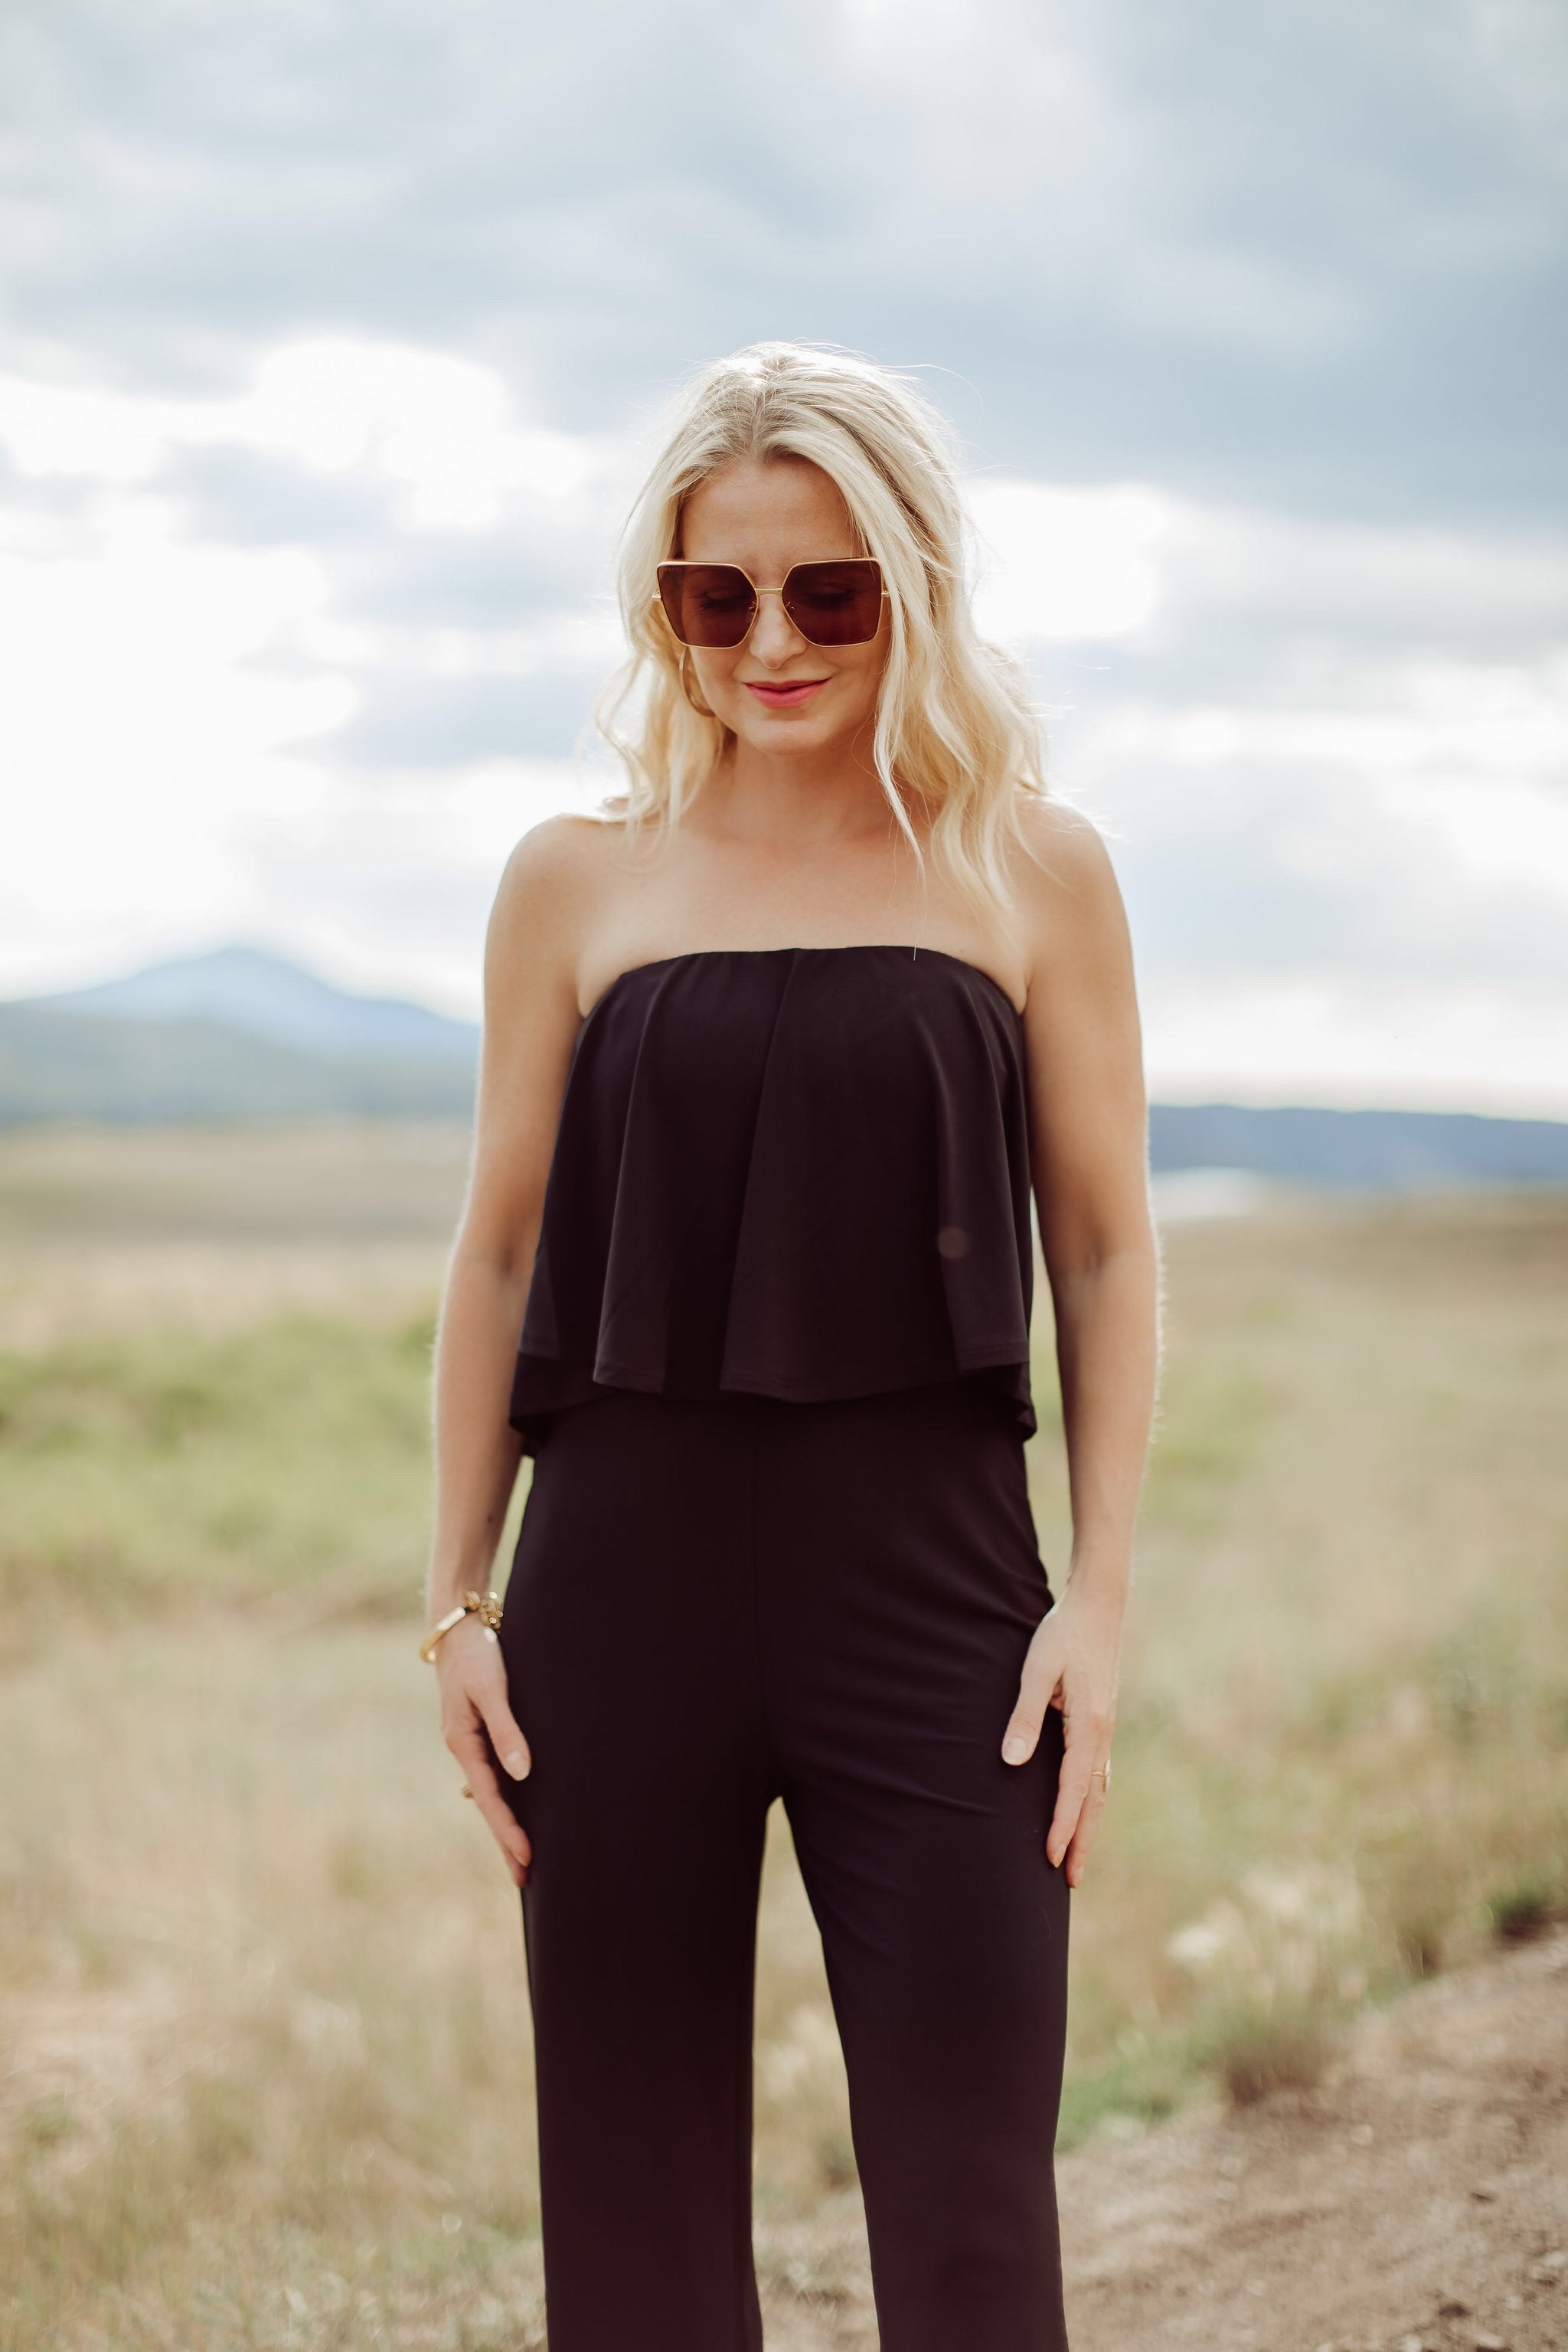 Jumpsuits Over 40, Fashion Blogger Erin Busbee of Busbee Style wearing a black flared jumpsuit by Scoop and black strappy block heel sandals by Scoop from Walmart in Telluride, Colorado